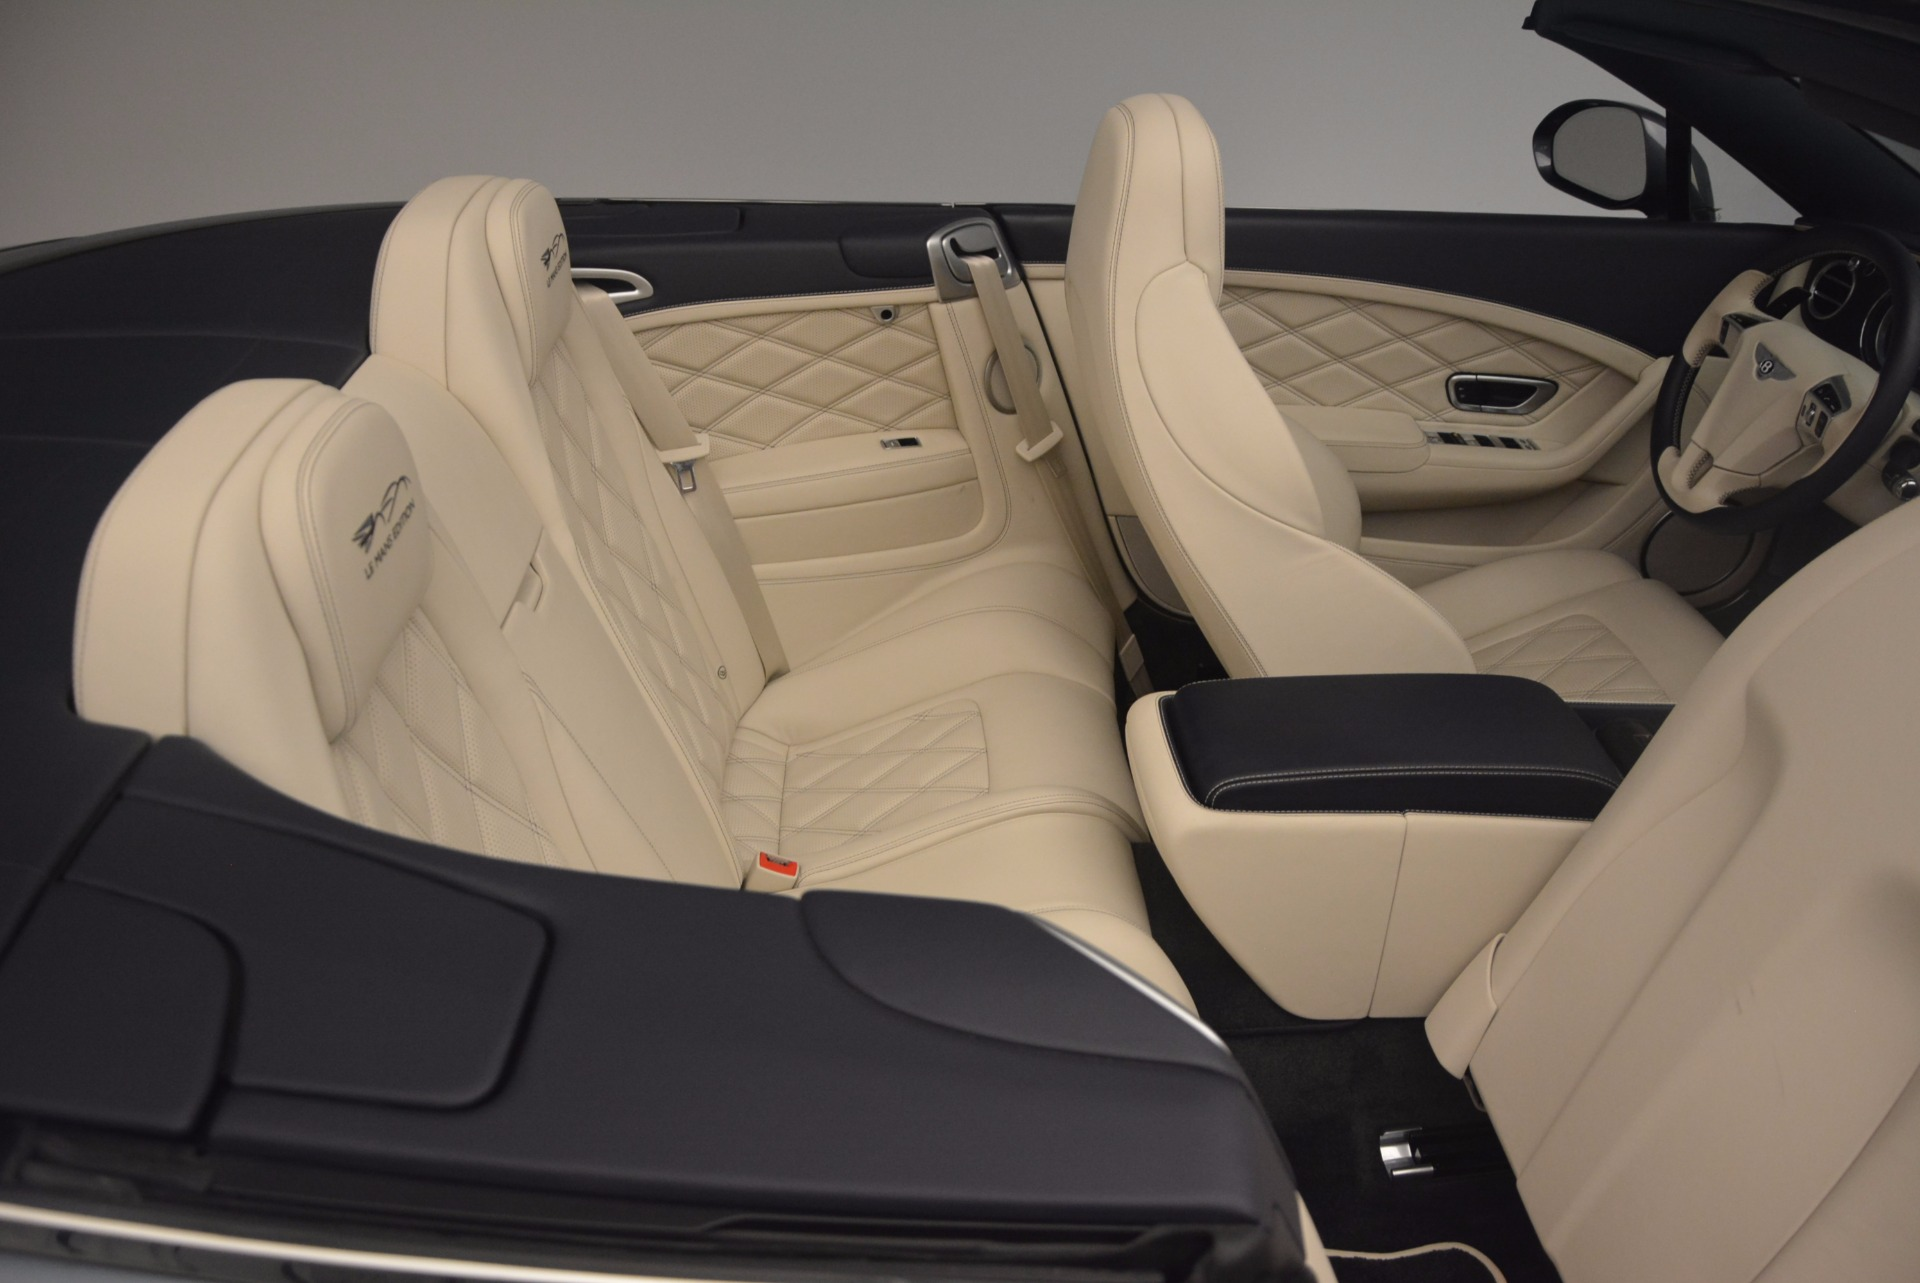 Used 2013 Bentley Continental GT V8 Le Mans Edition, 1 of 48 For Sale In Westport, CT 1288_p52